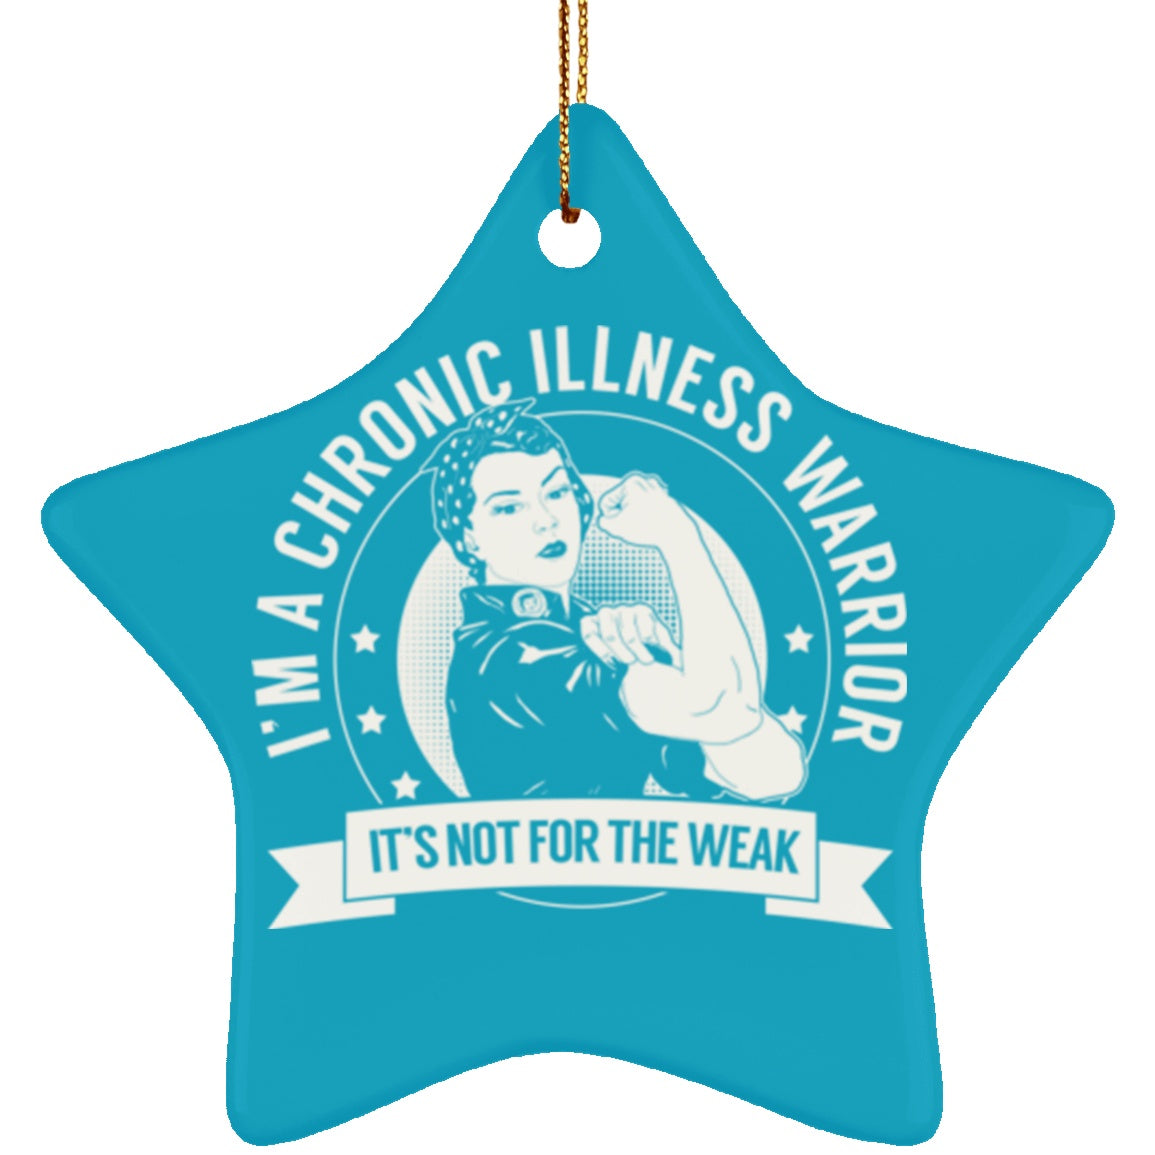 Chronic Illness Warrior Not For The Weak Star Ornament - The Unchargeables